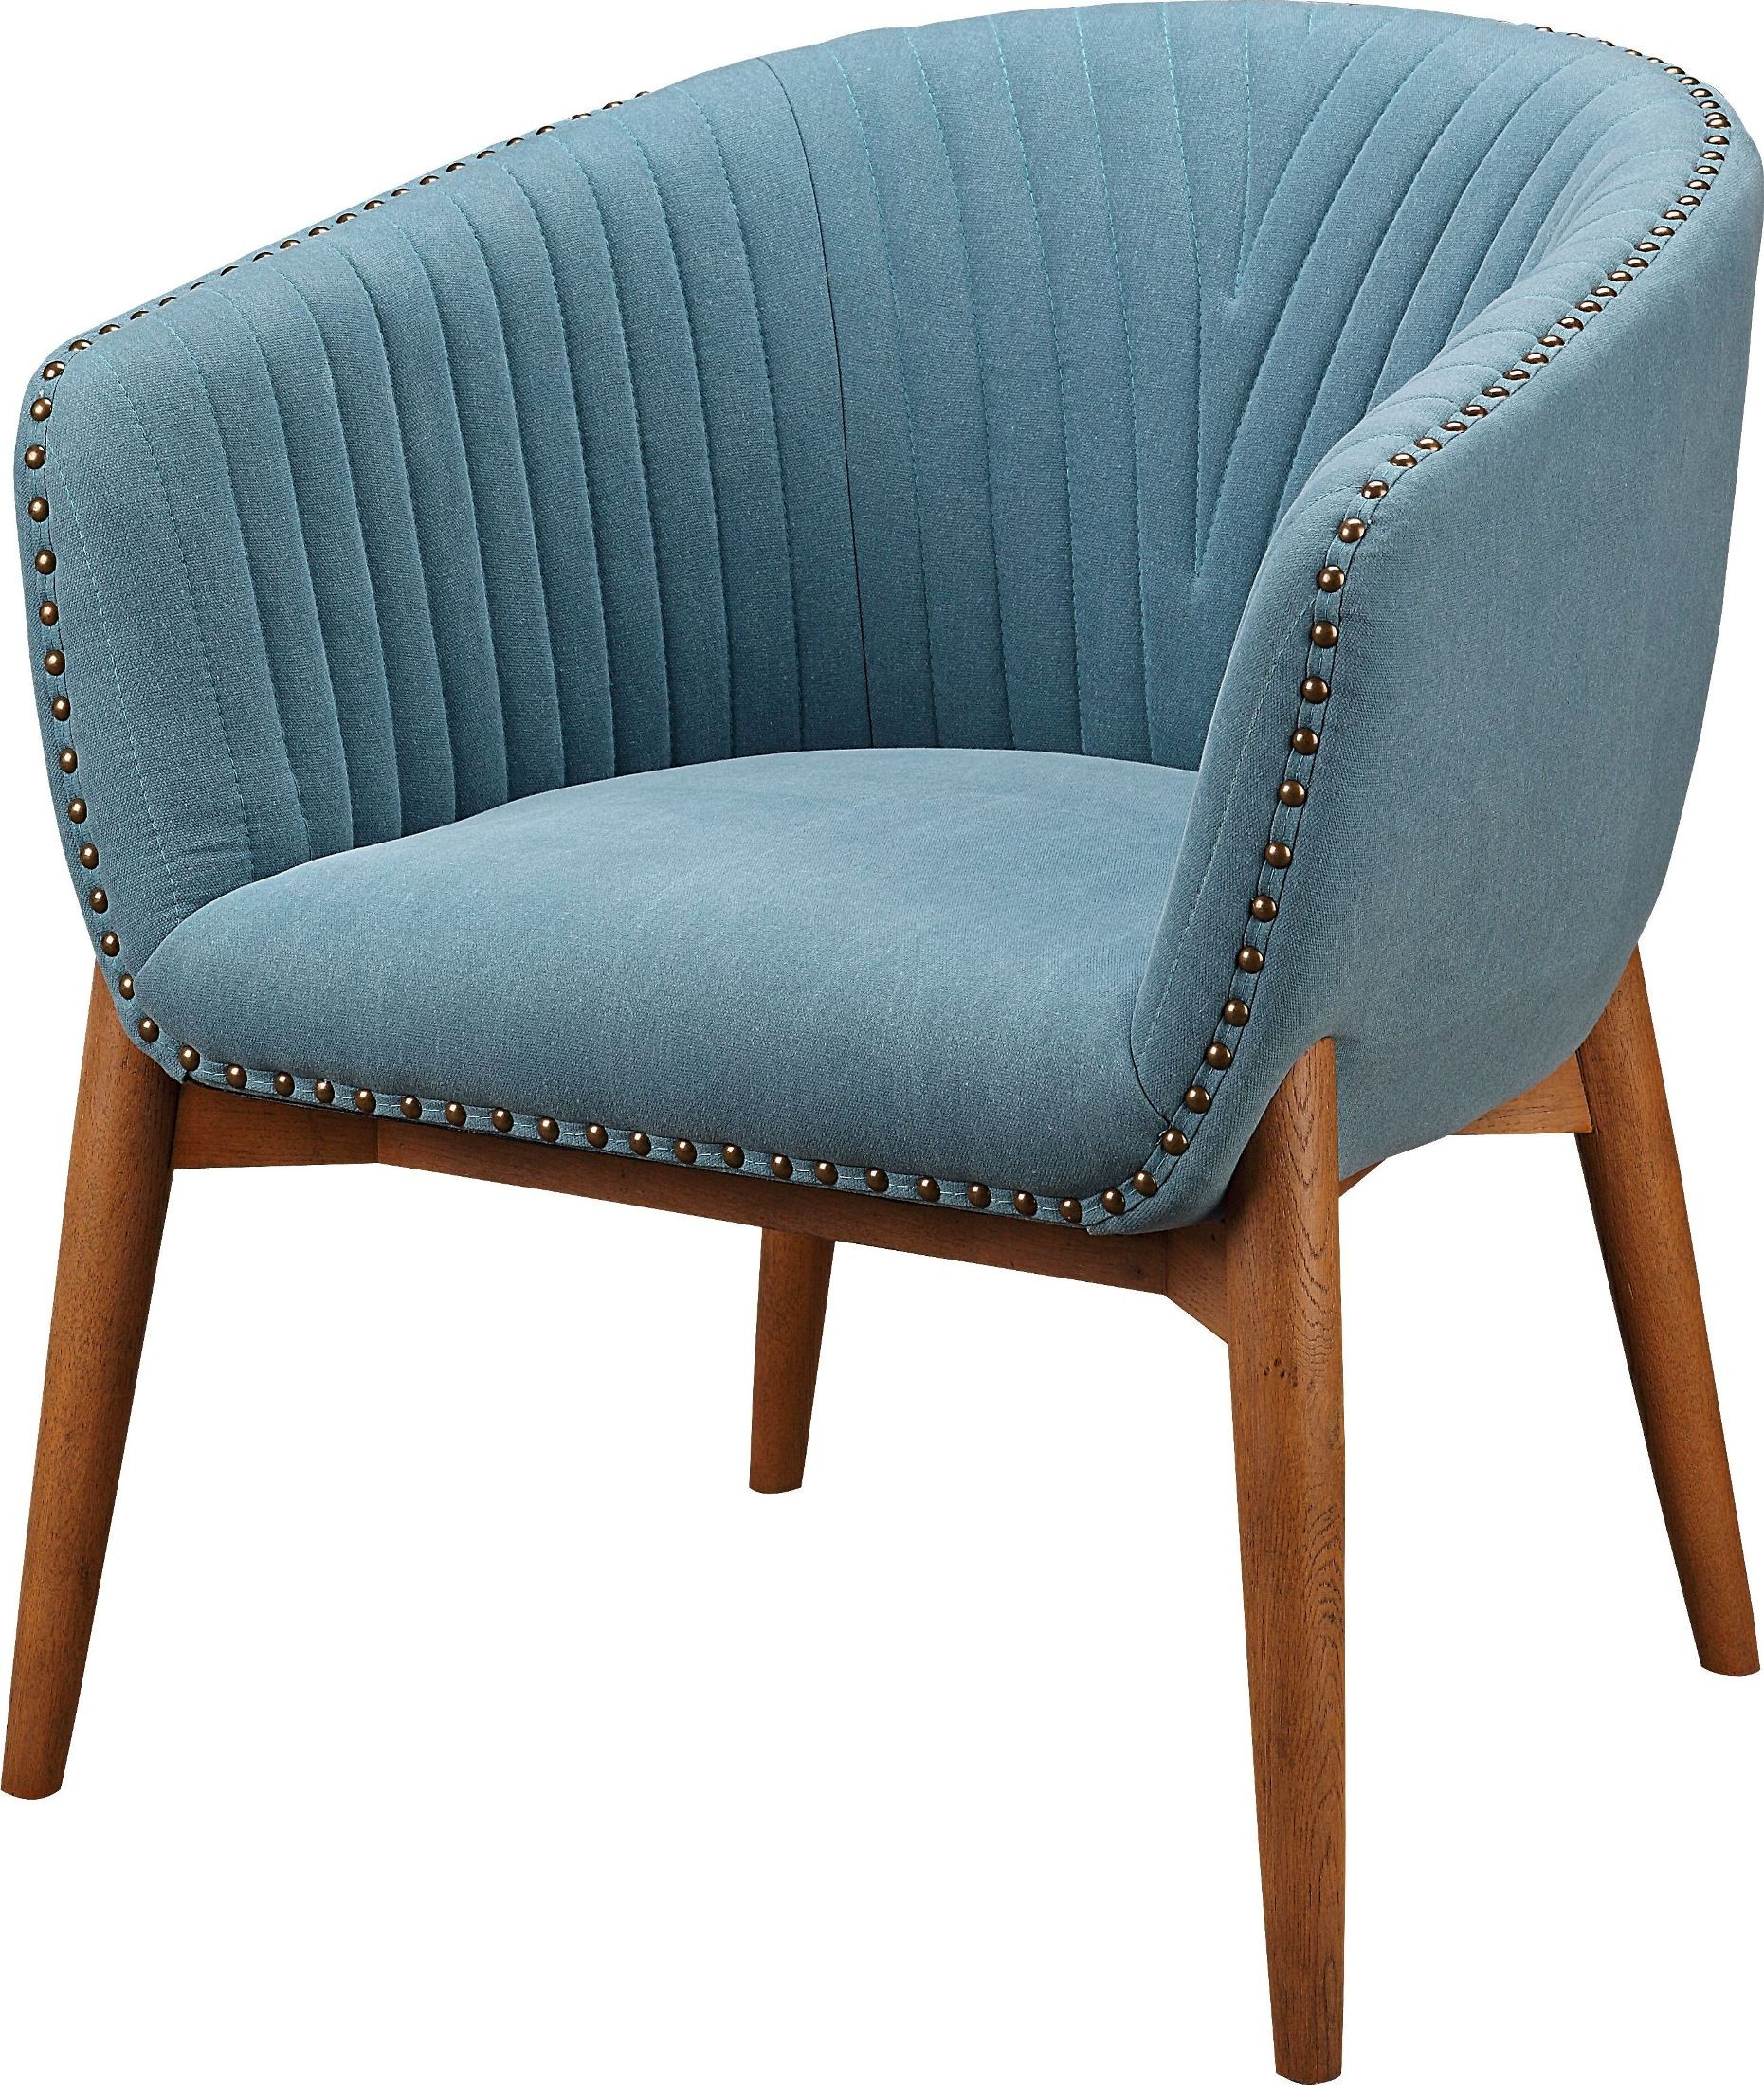 Kismet Teal Tub Chair from Moes Home | Coleman Furniture